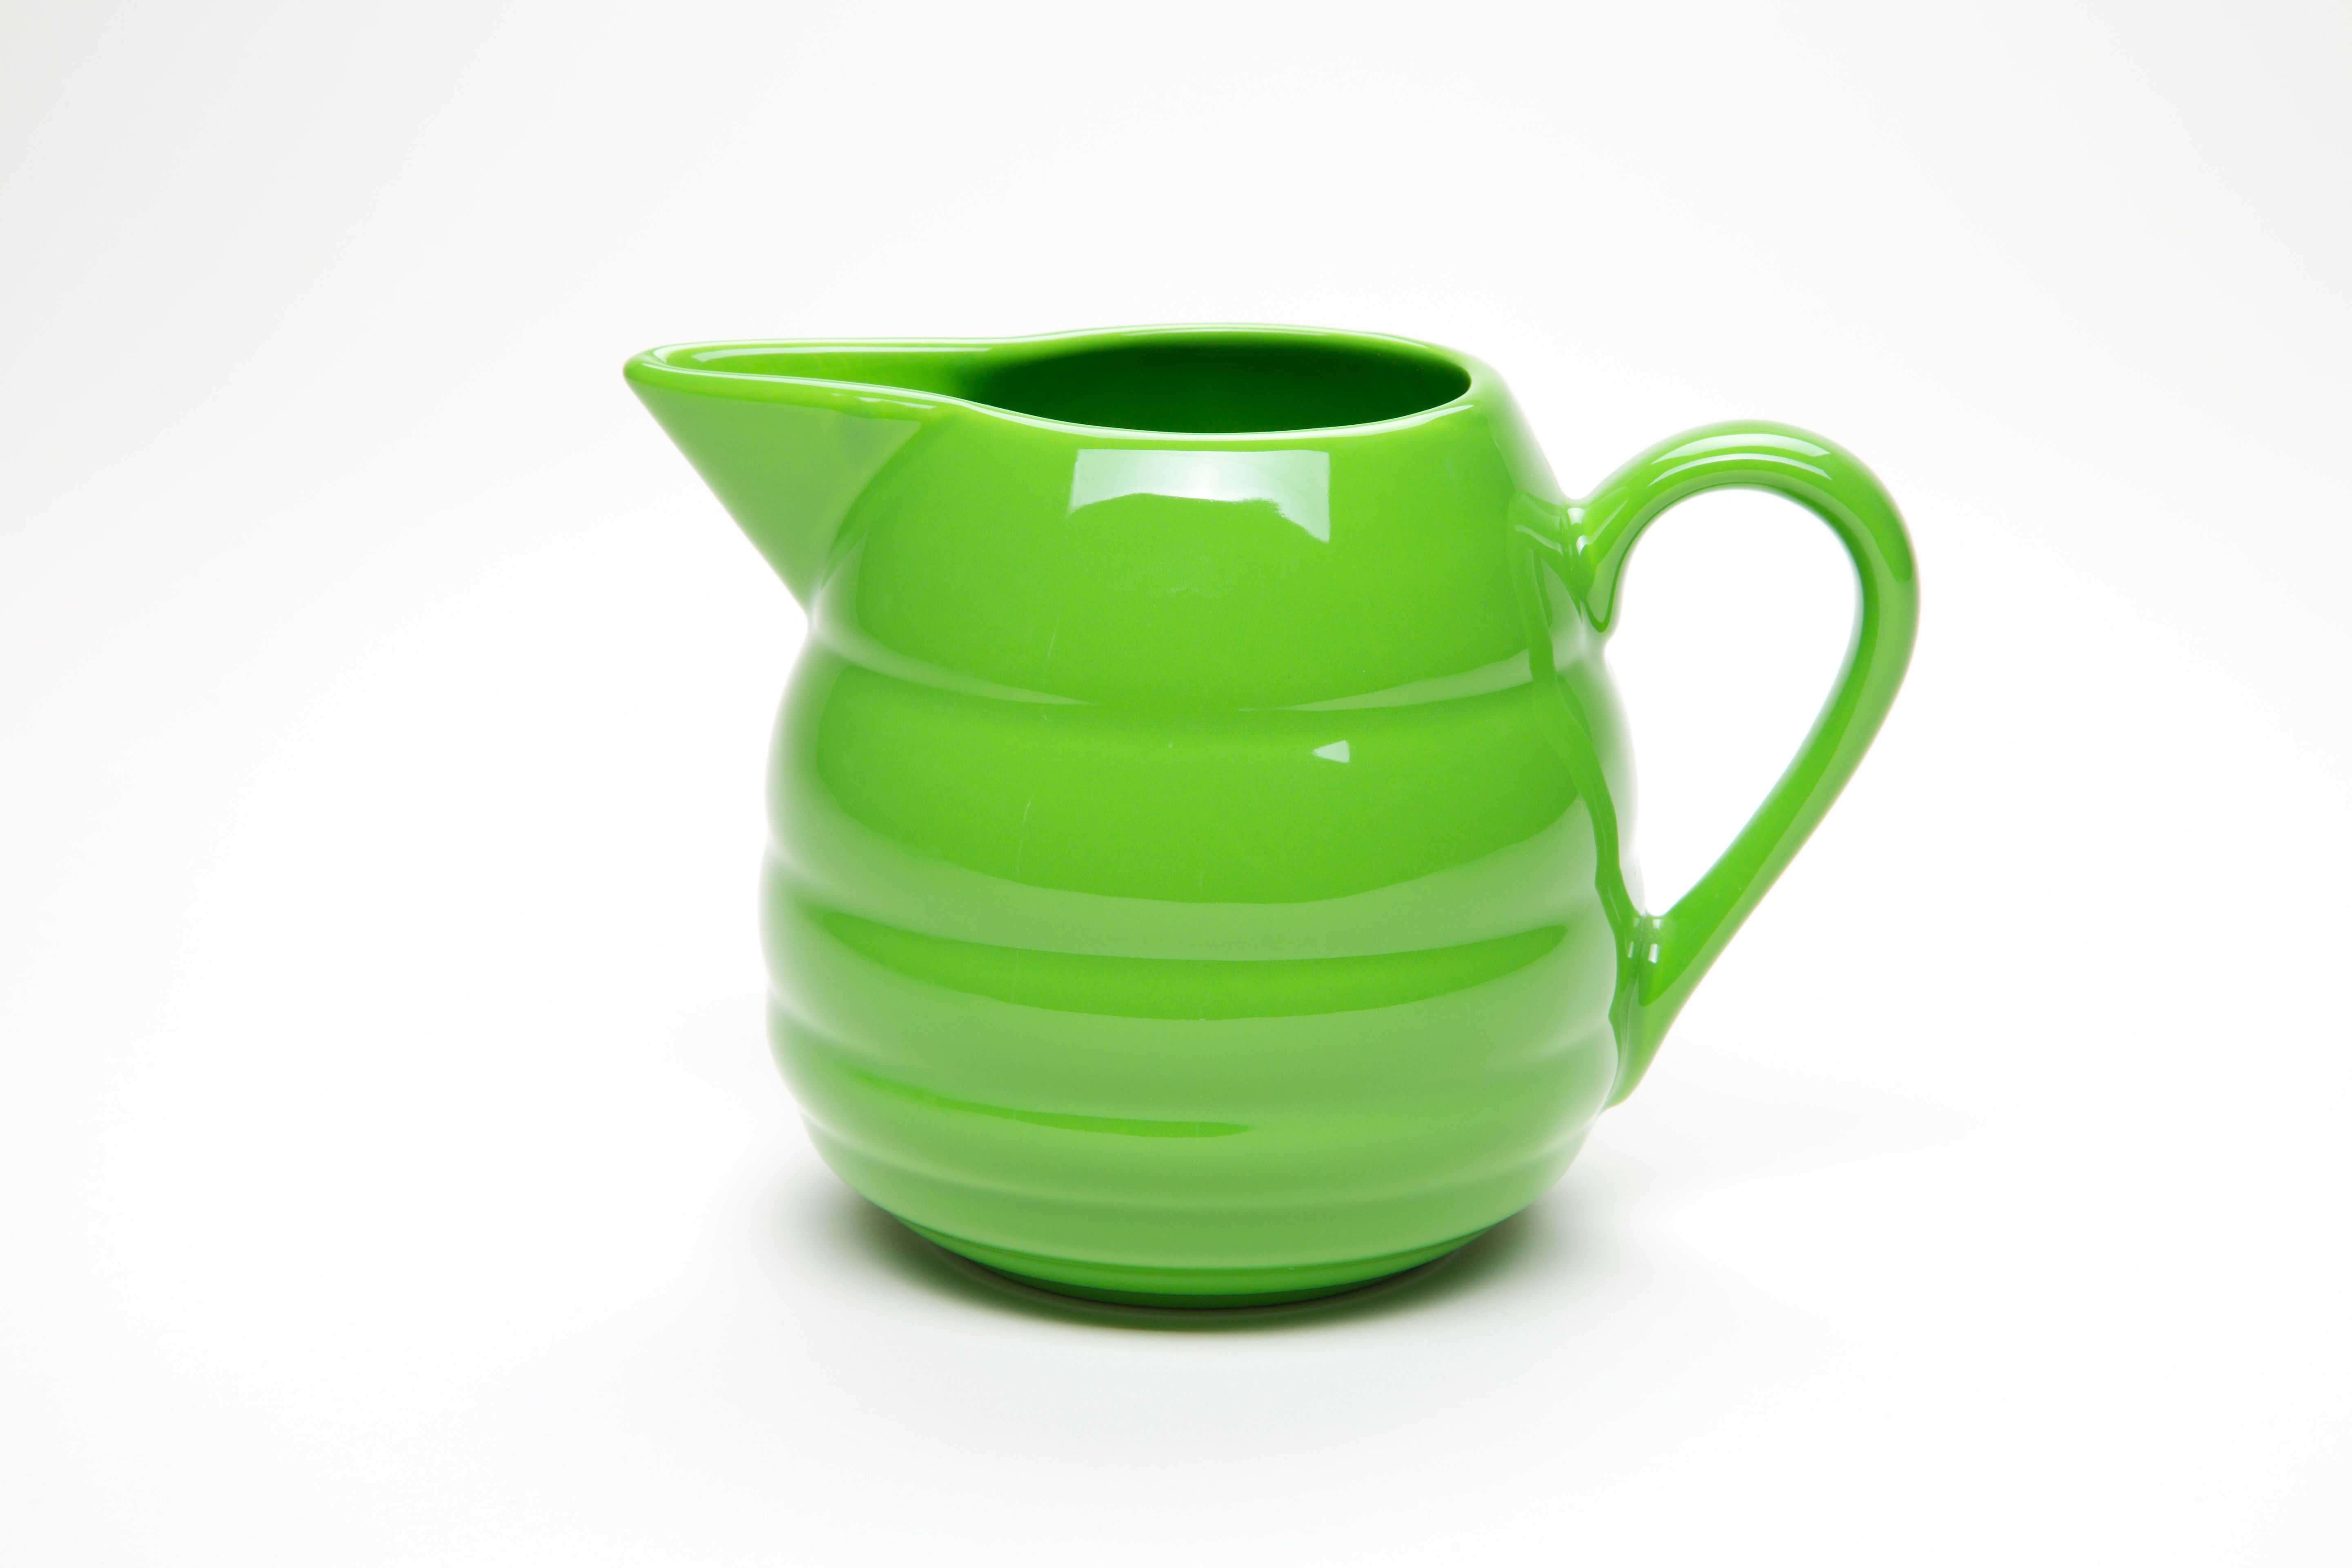 Bauer Pottery Saturn Pitcher In Parrot Green Yowza Www Bauerpottery Com Bauer Pottery Pottery Russel Wright